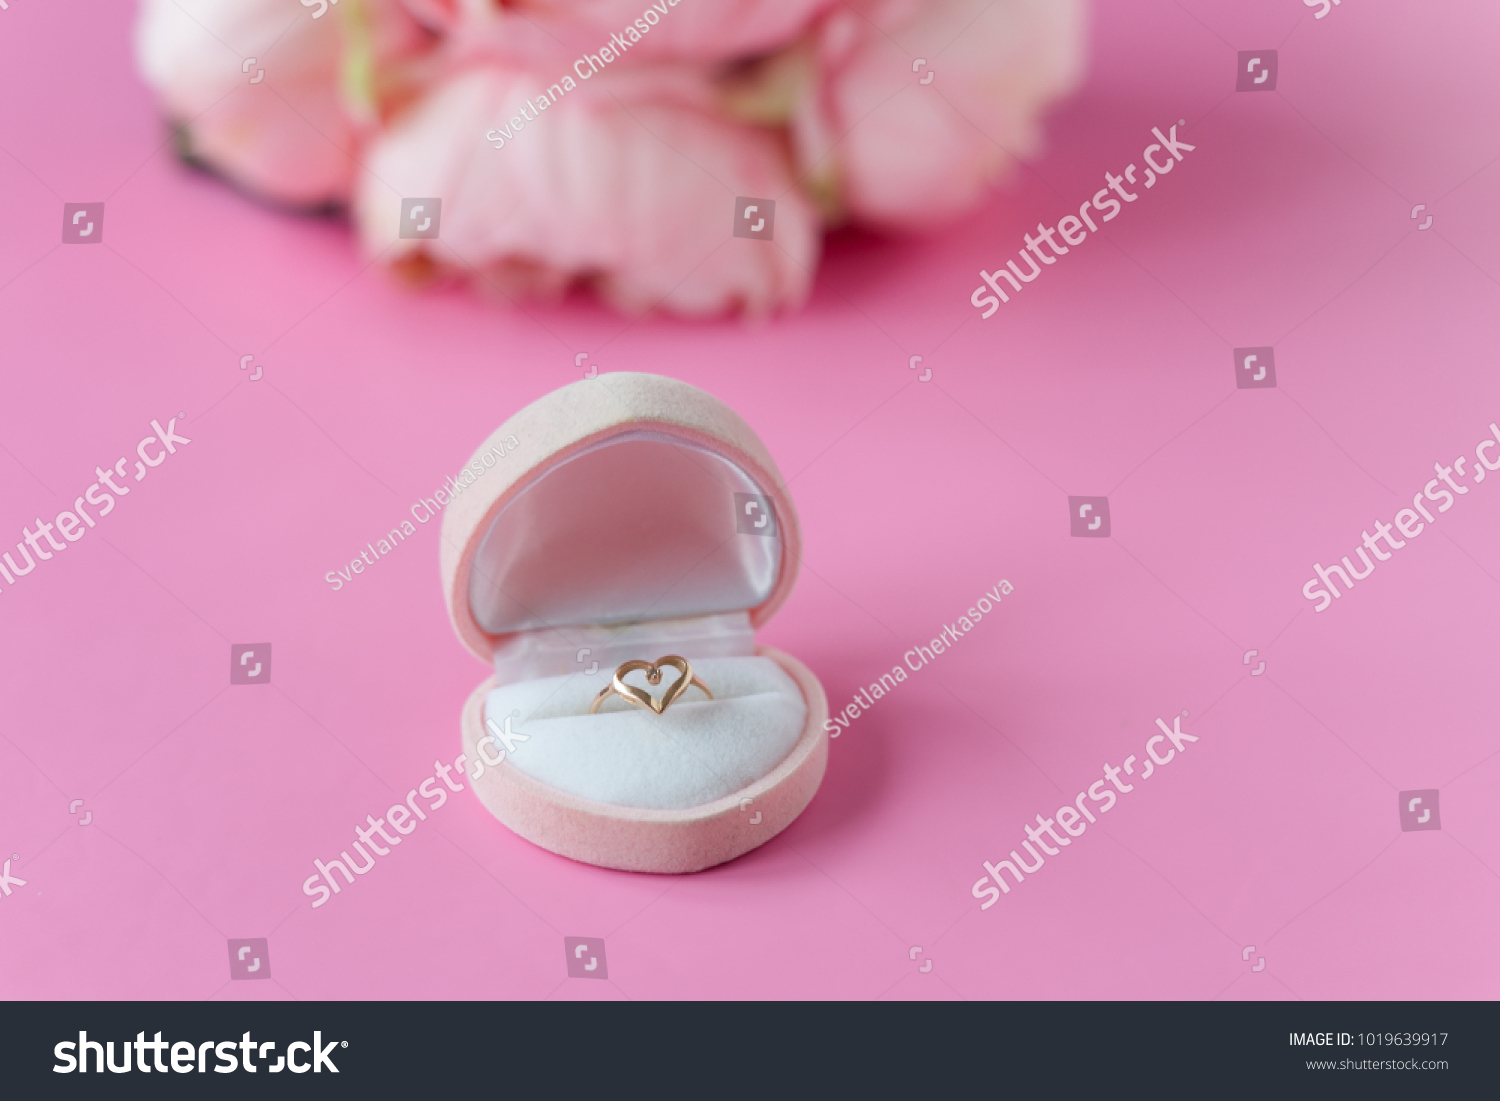 Engagement Ring Flowers On Pink Background Stock Photo (Edit Now ...